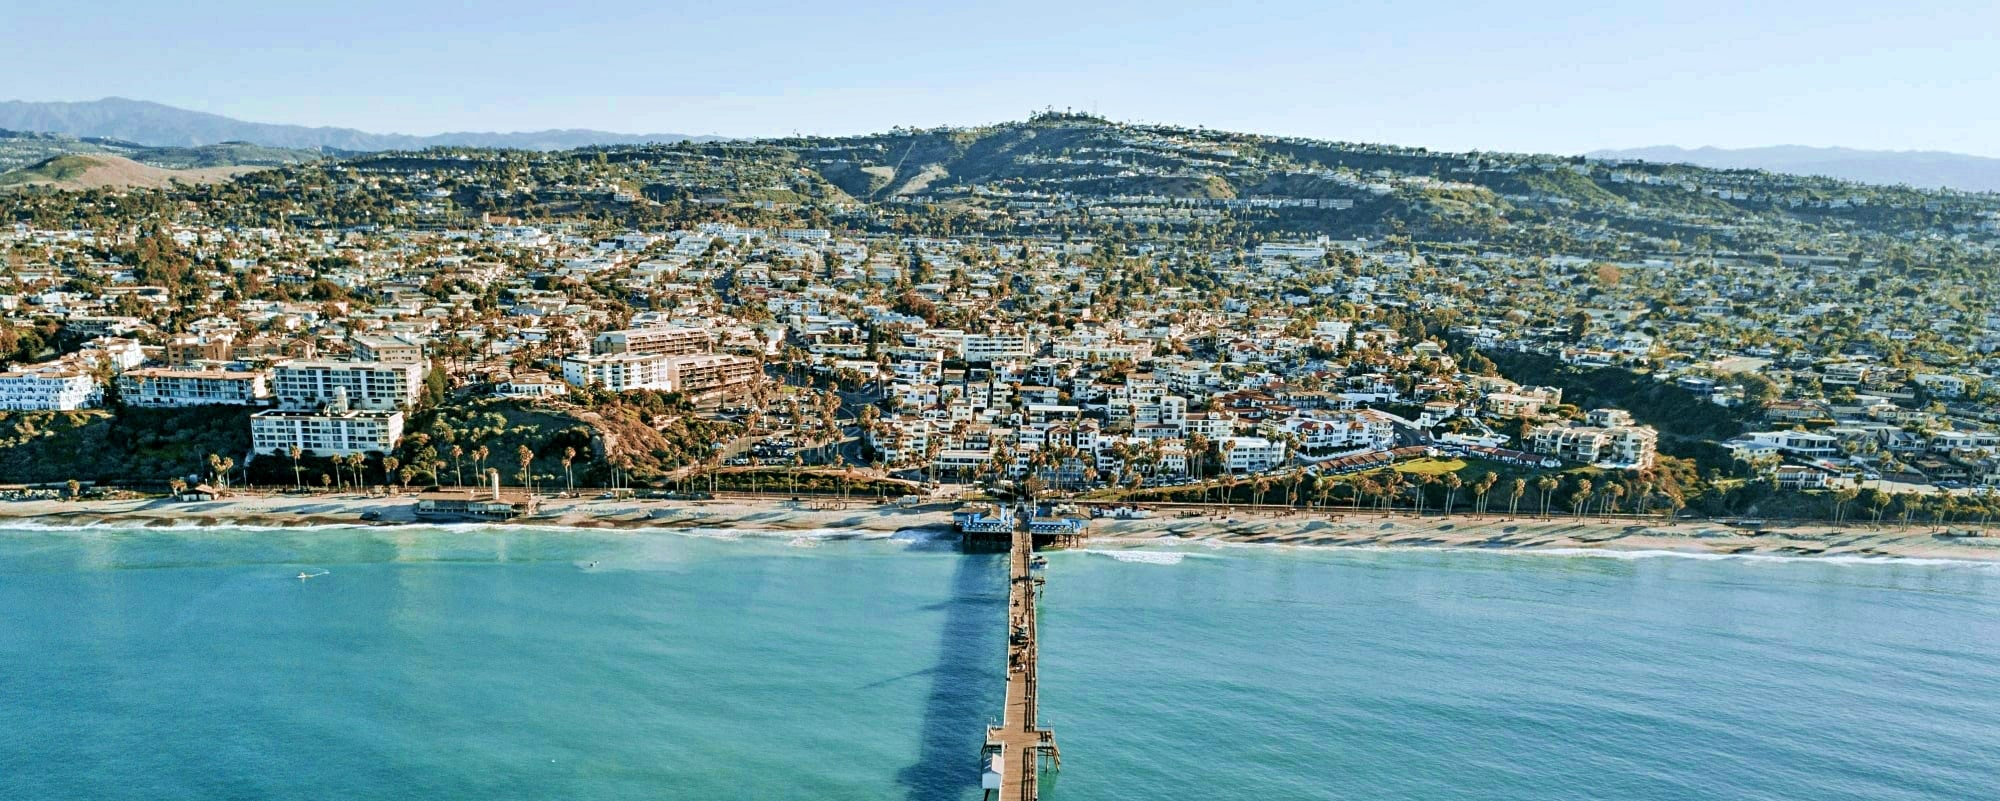 Aerial view of pier and city of San Clemente, Orange County, California